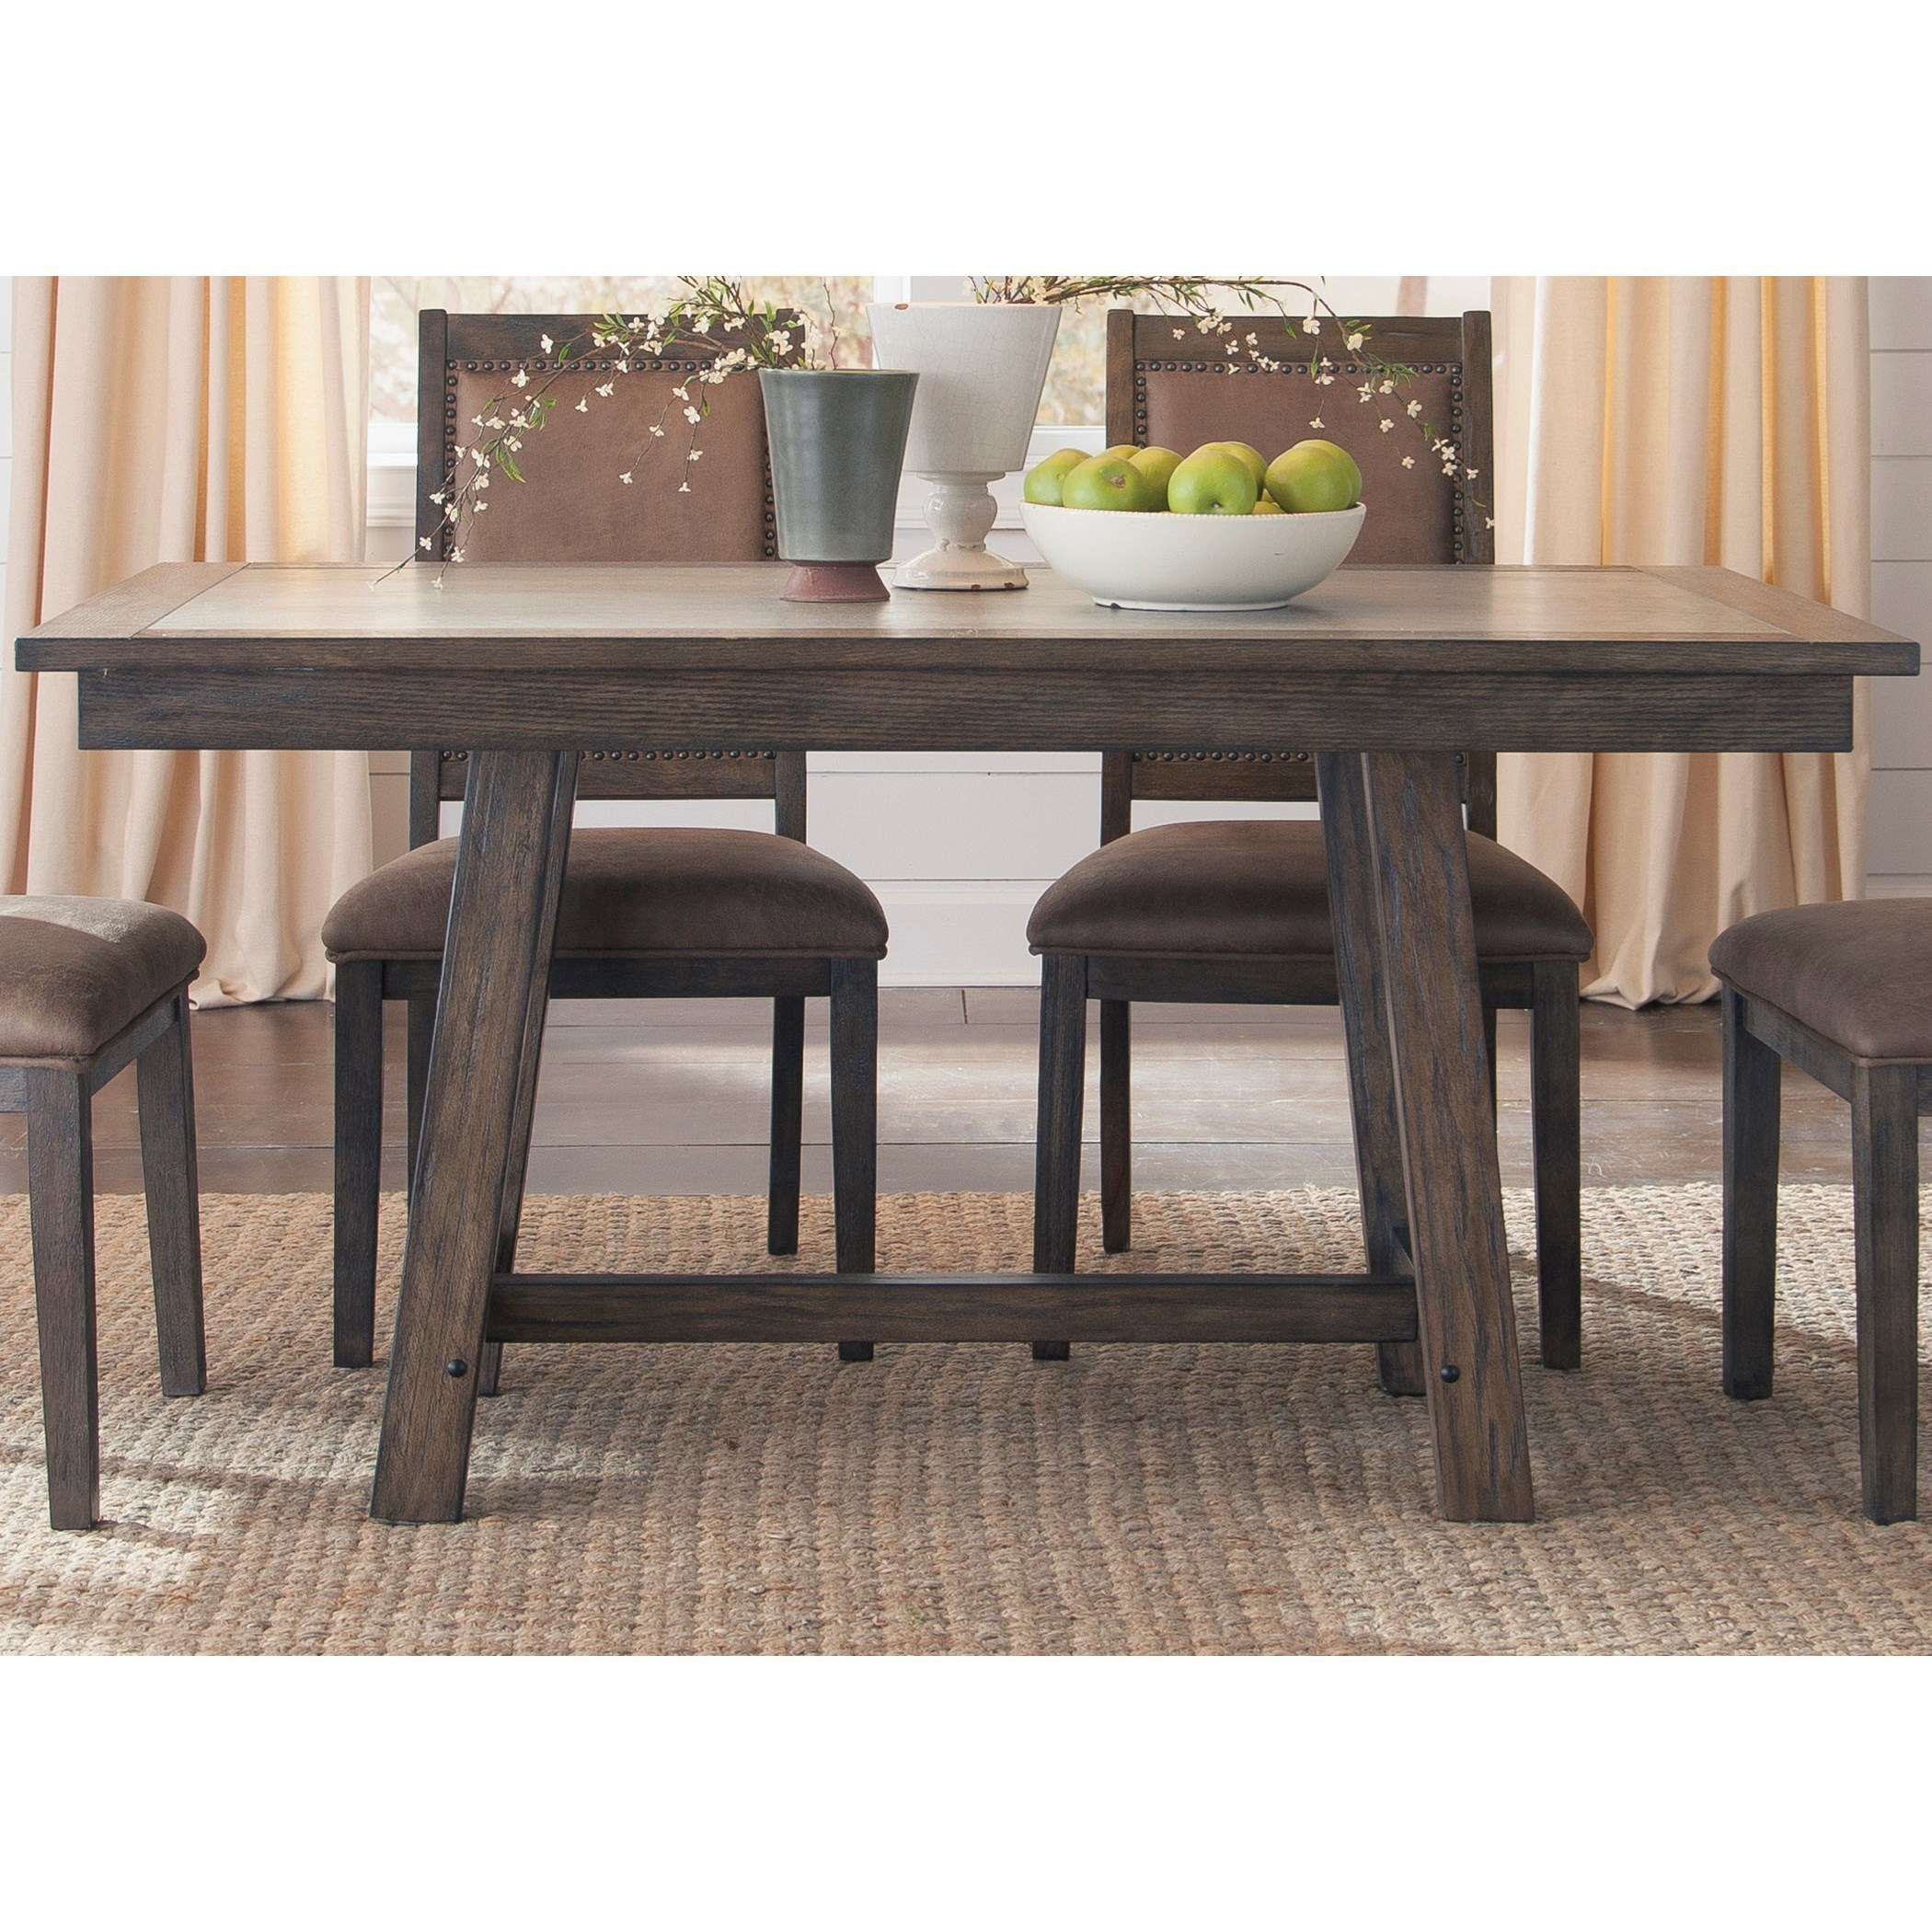 Marvelous Liberty Furniture Stone Brook Trestle Table With Concrete Insert